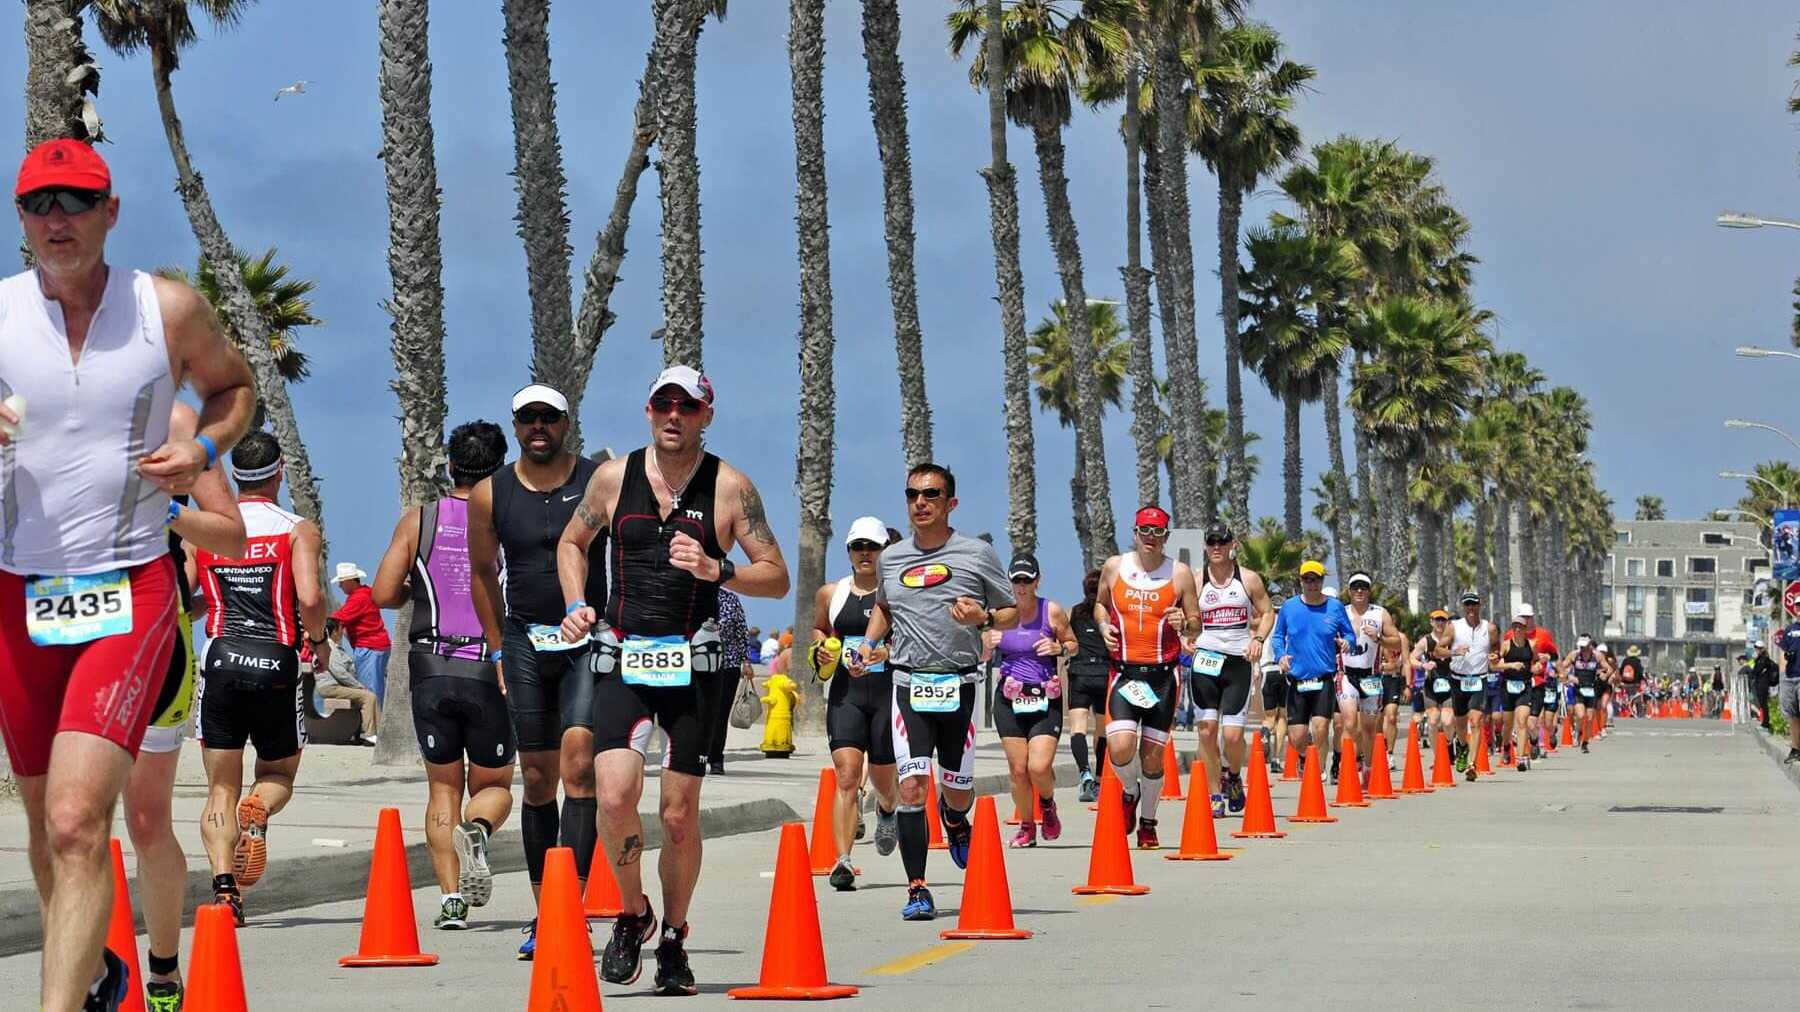 Ironman 70.3 California Oceanside 2013